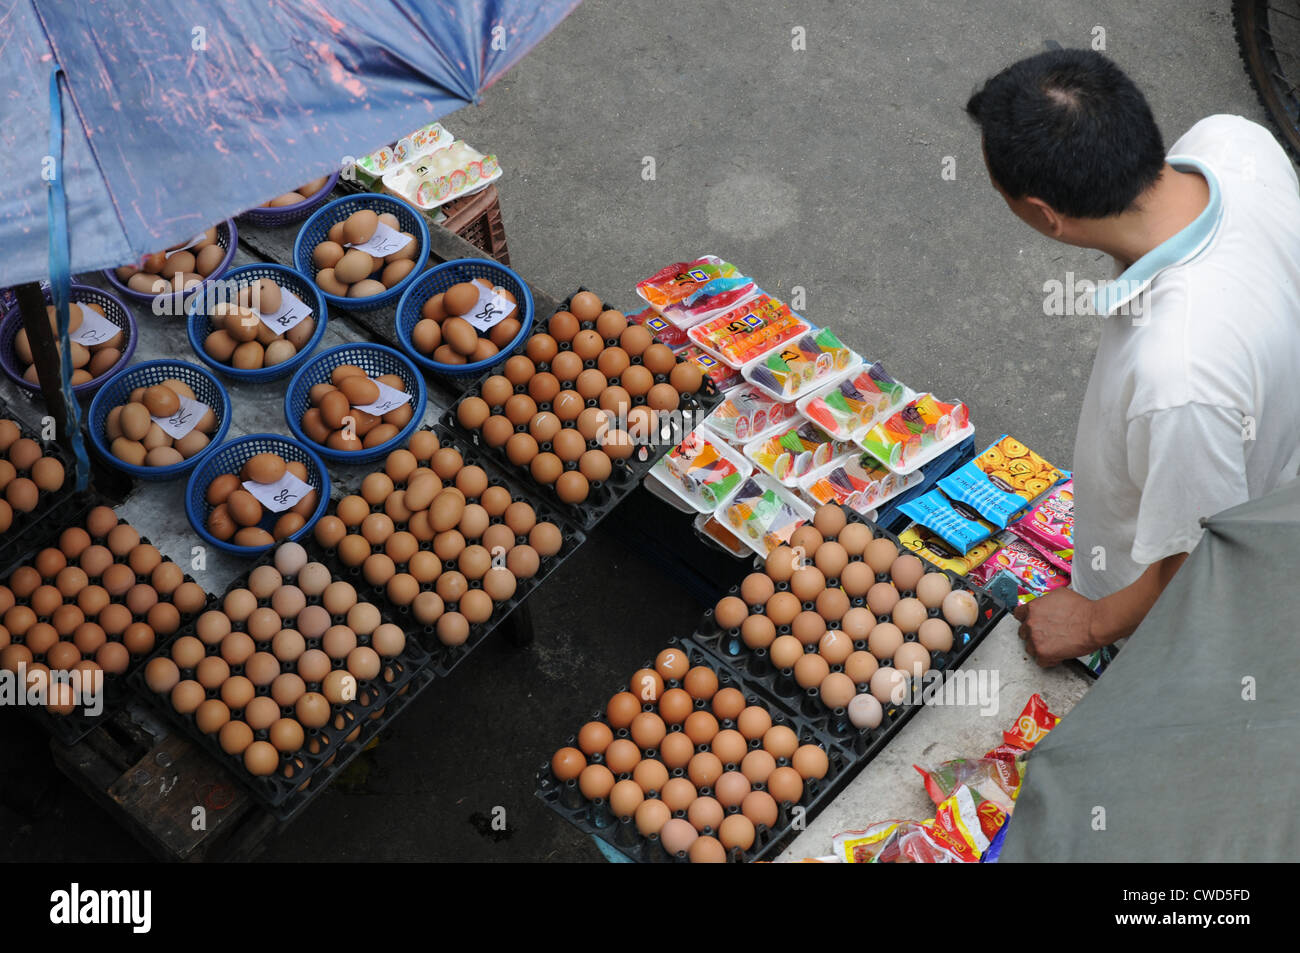 Eggs and sundry items for sale, street stall and stallholder, off Sukhumvit Road, Bangkok. Stock Photo